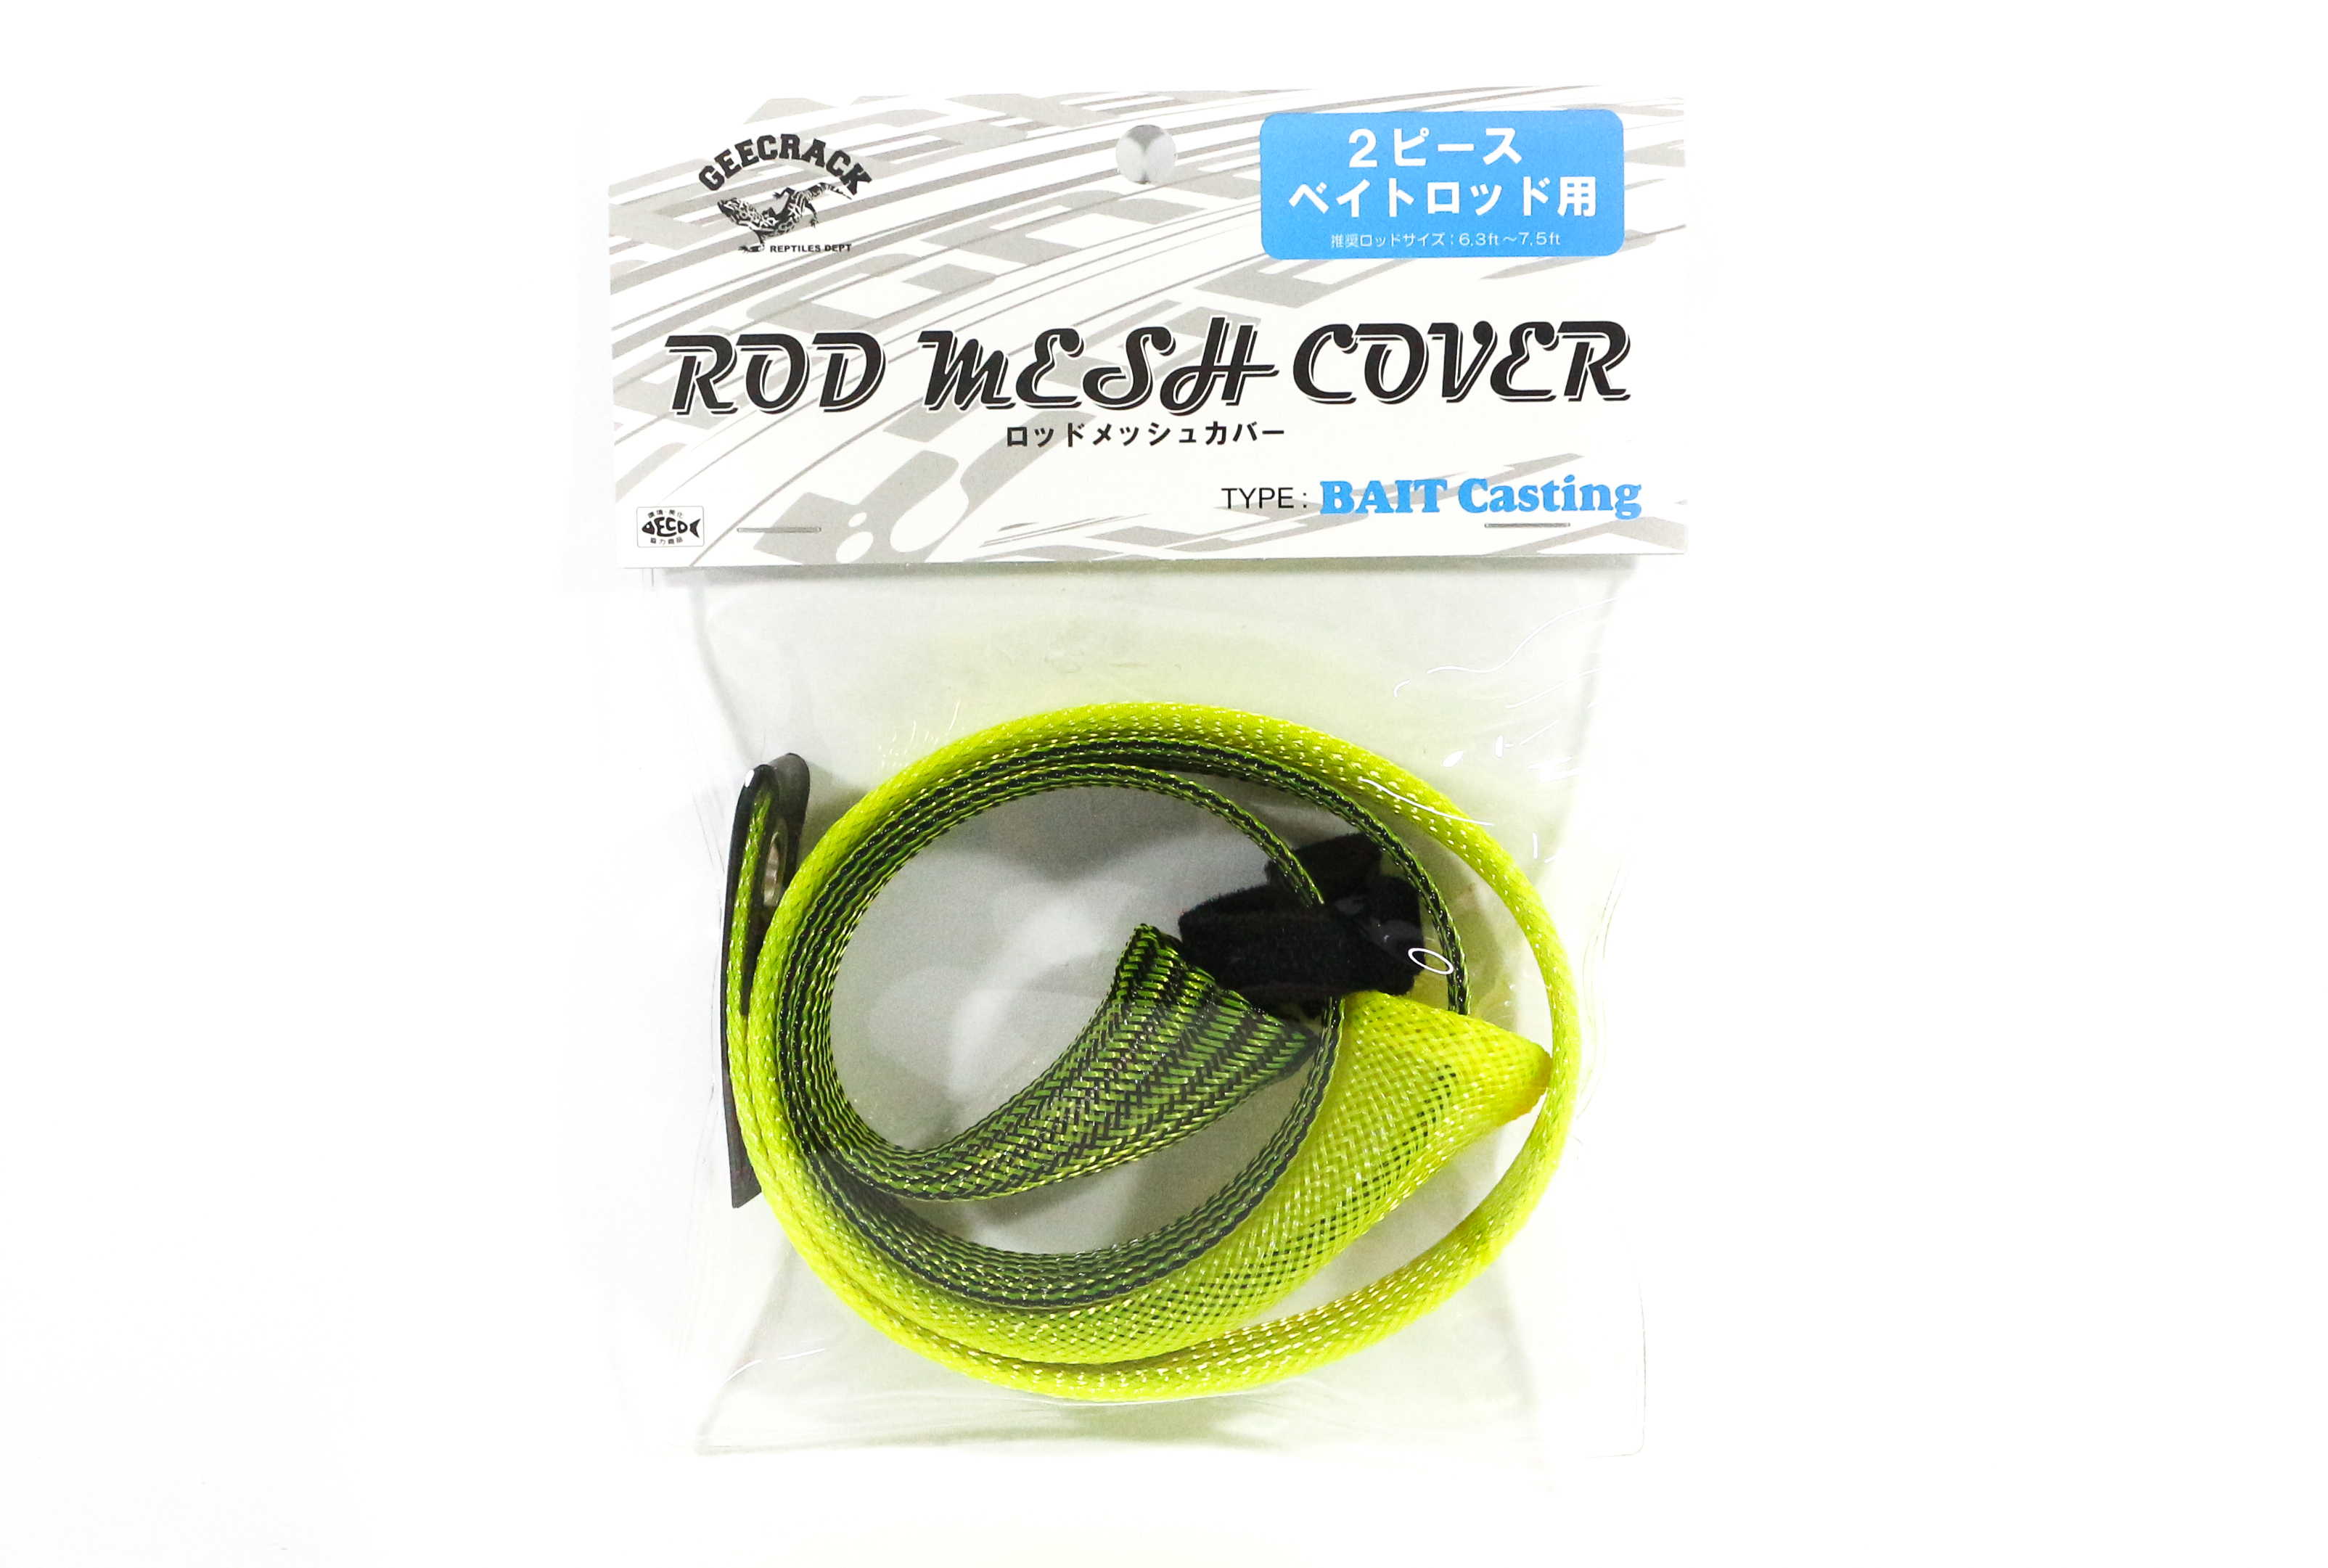 Sale Gee Crack GEE 7172 Rod Mesh Cover Baitcast 2 Pc 102x40 ,35 cm Y (5193)